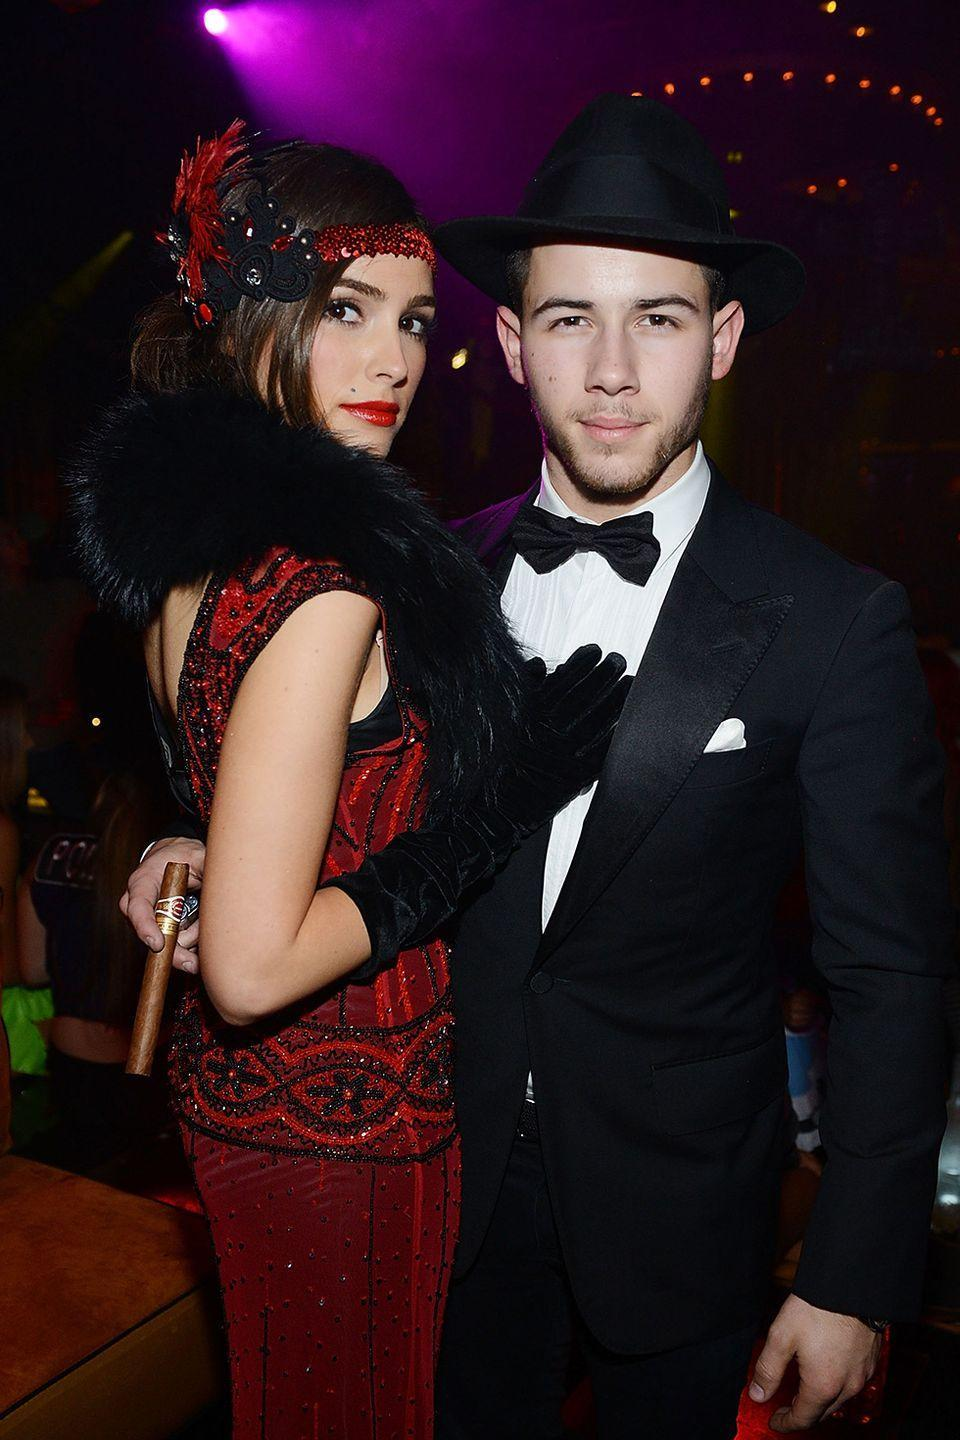 <p>In 2014, Olivia Culpo and Nick Jonas rocked their best 1920s flapper and mobster look for the Halloween costume party contest at the Mirage Hotel and Casino in Las Vegas, Nevada.</p>